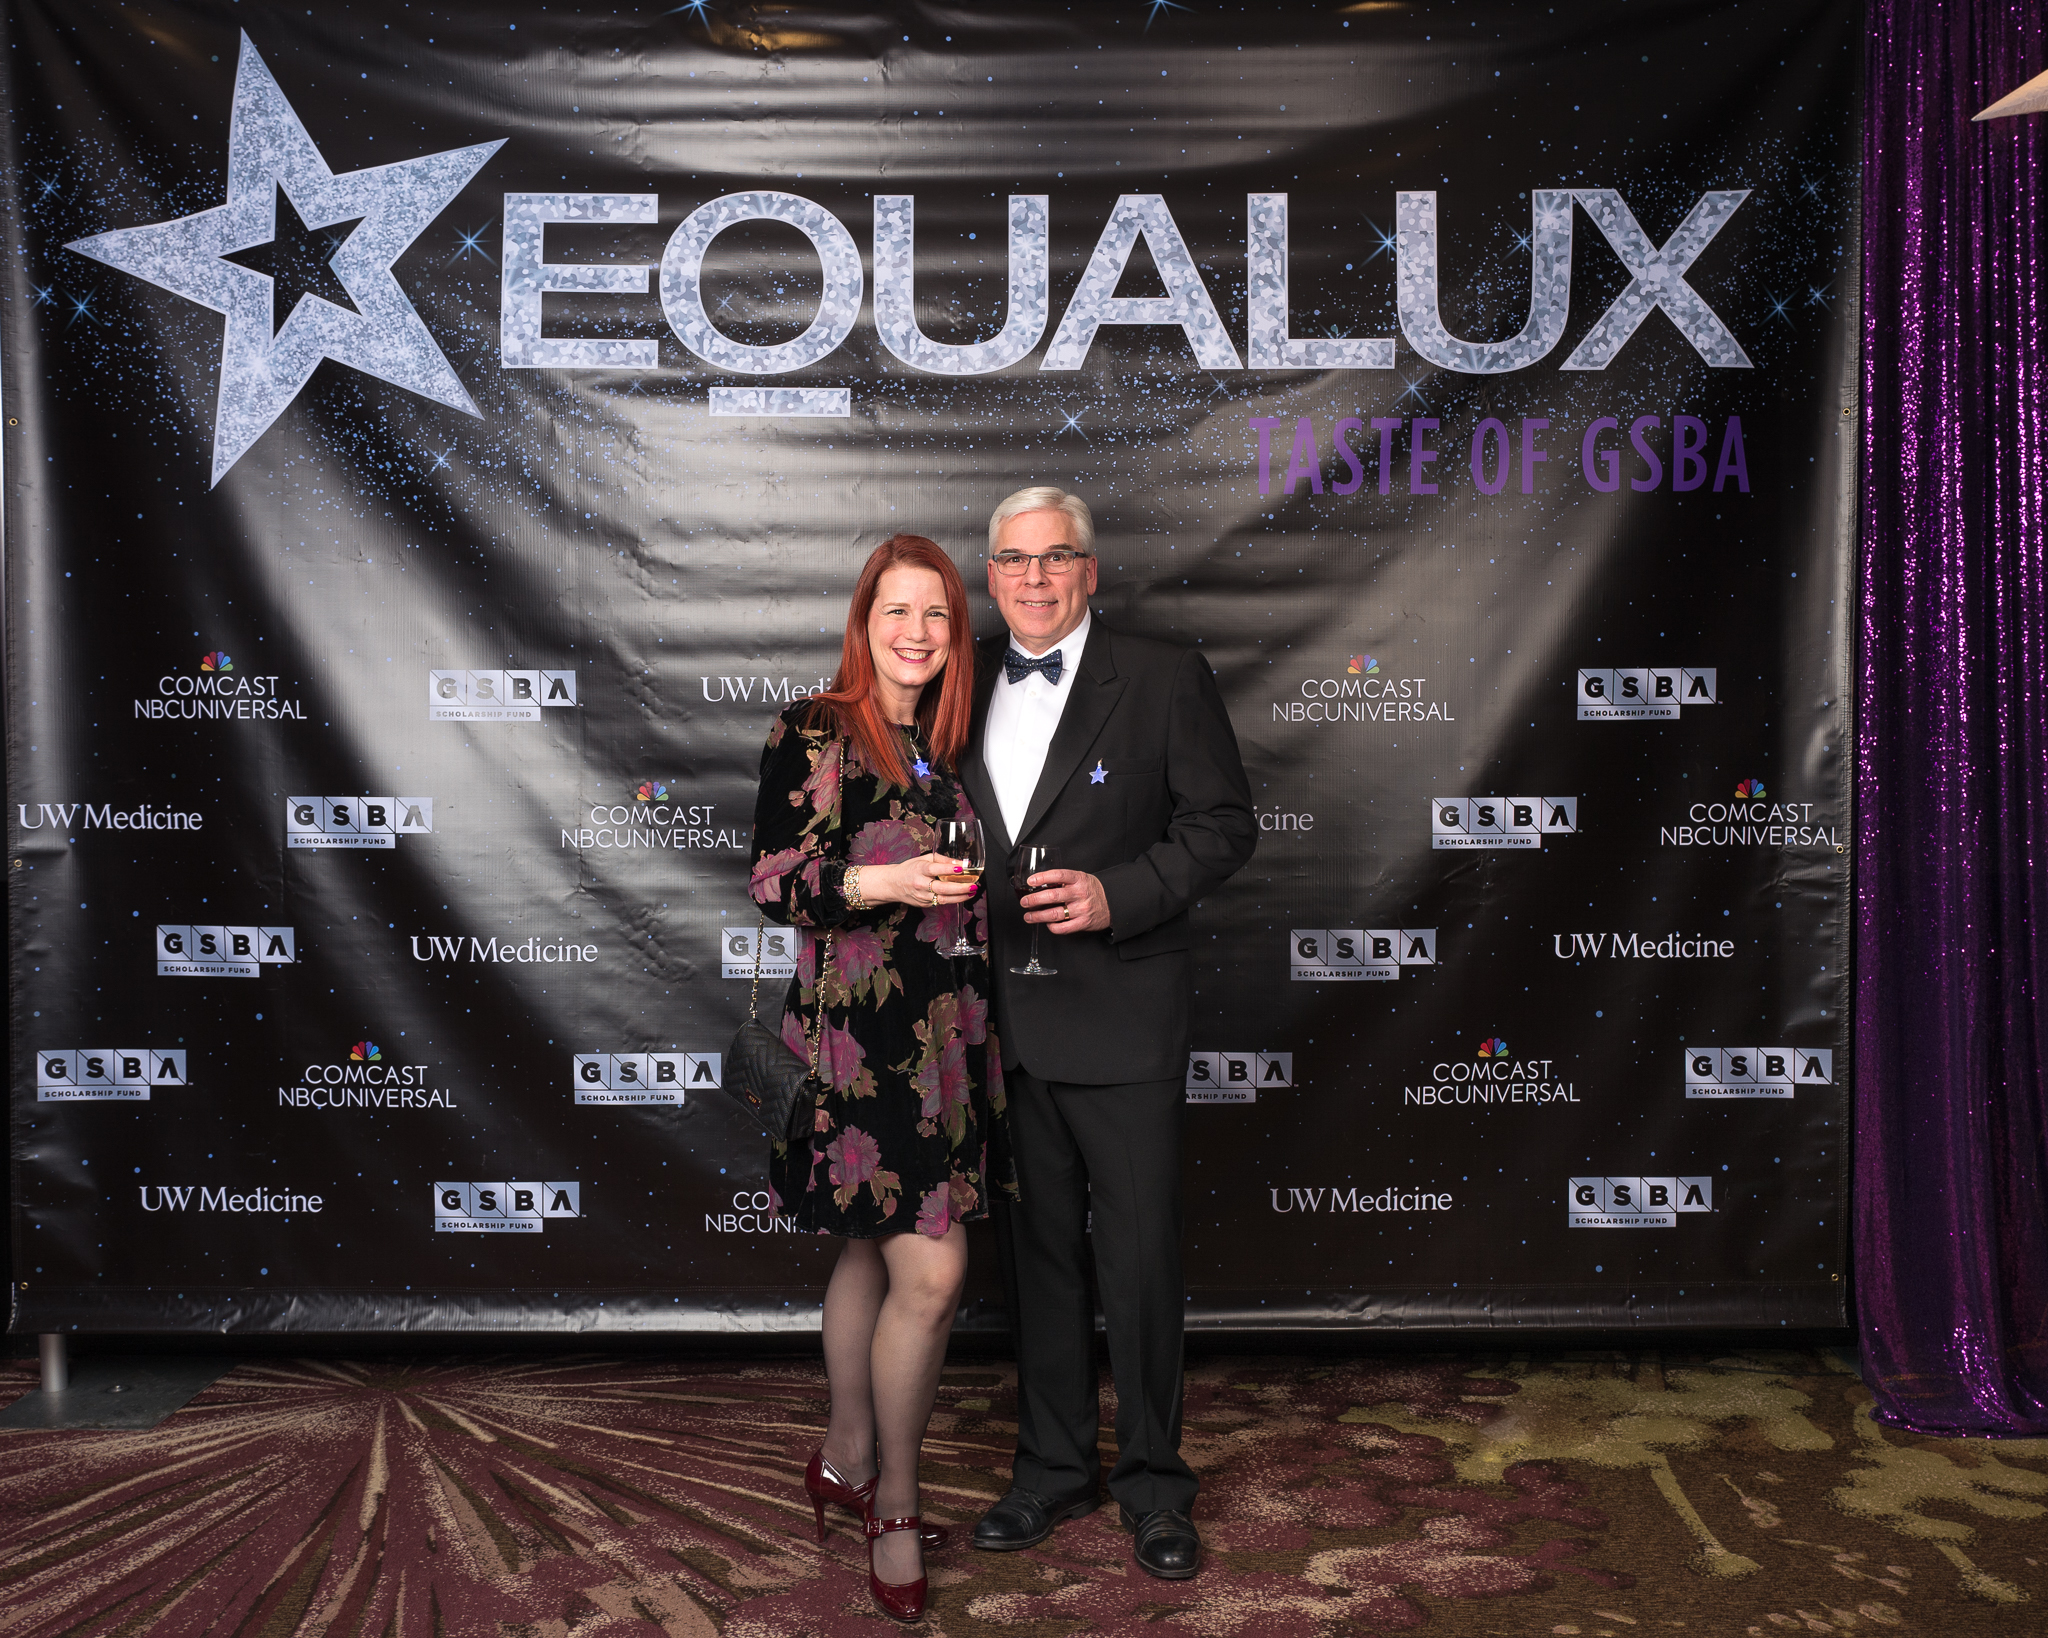 111718_GSBA EQUALUX at The Westin Seattle (Credit- Nate Gowdy)-95.jpg